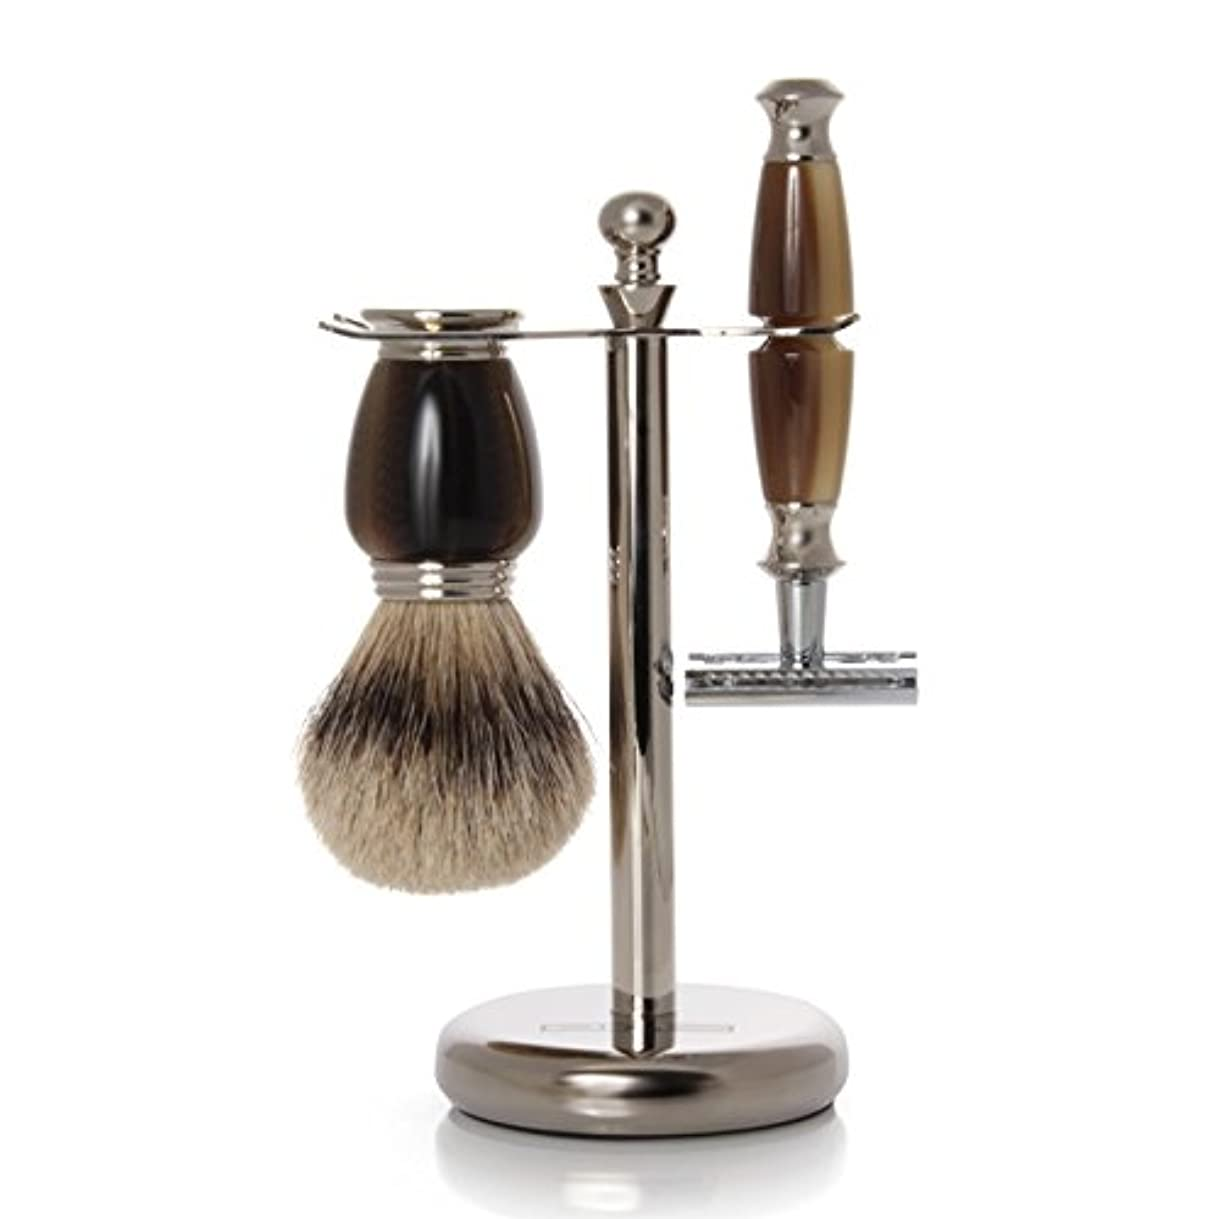 GOLDDACHS Shaving Set, Safety Razor, Silvertip, Galalith